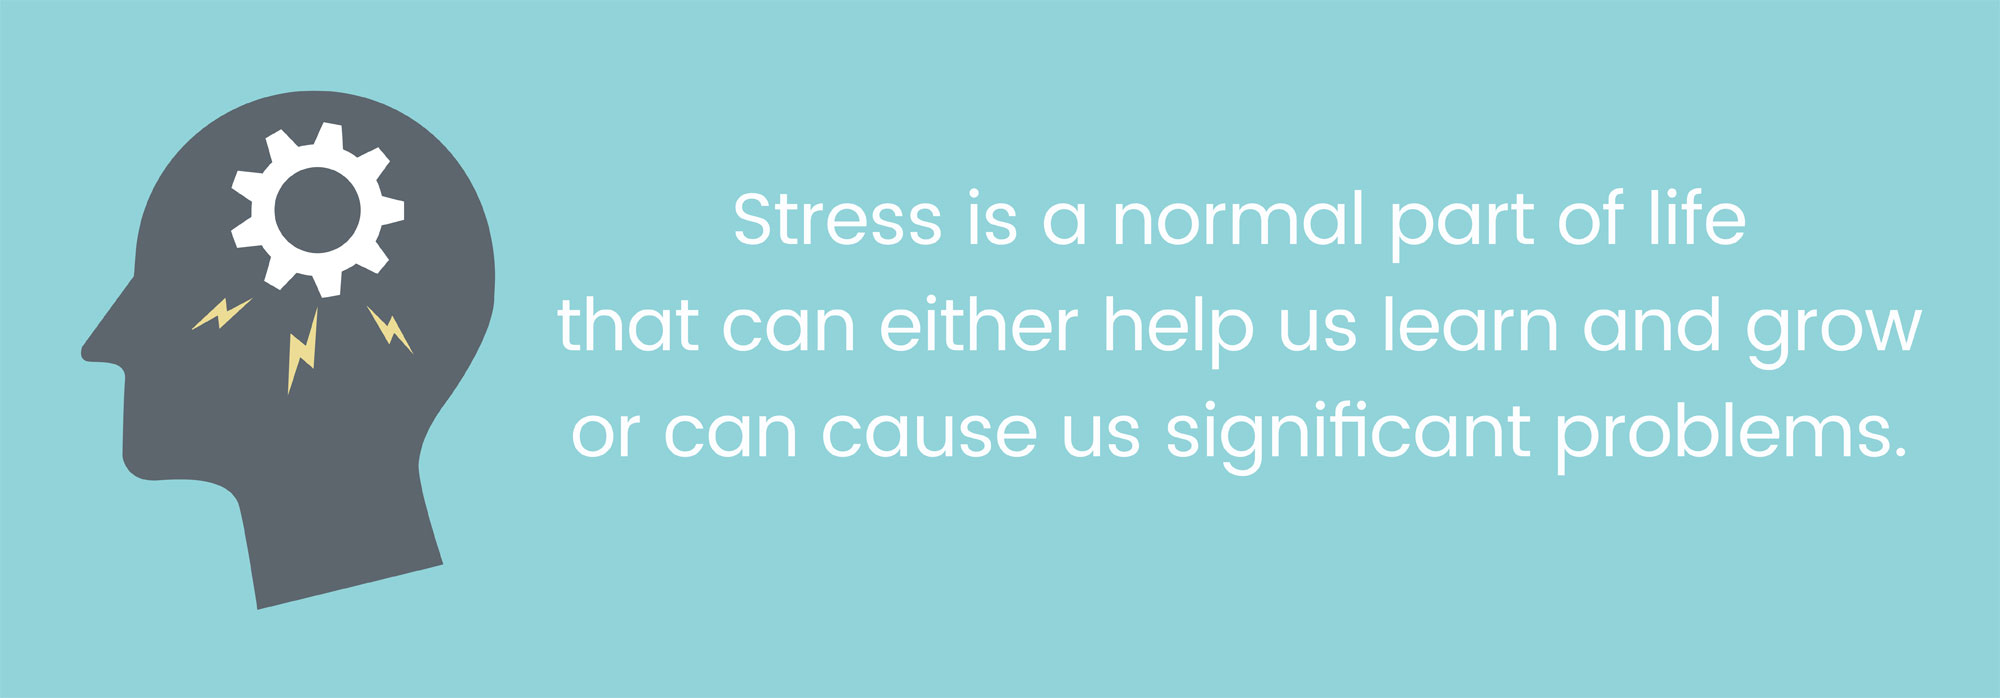 Stress is a normal part of life that can either help us learn and grow or cause significant problems